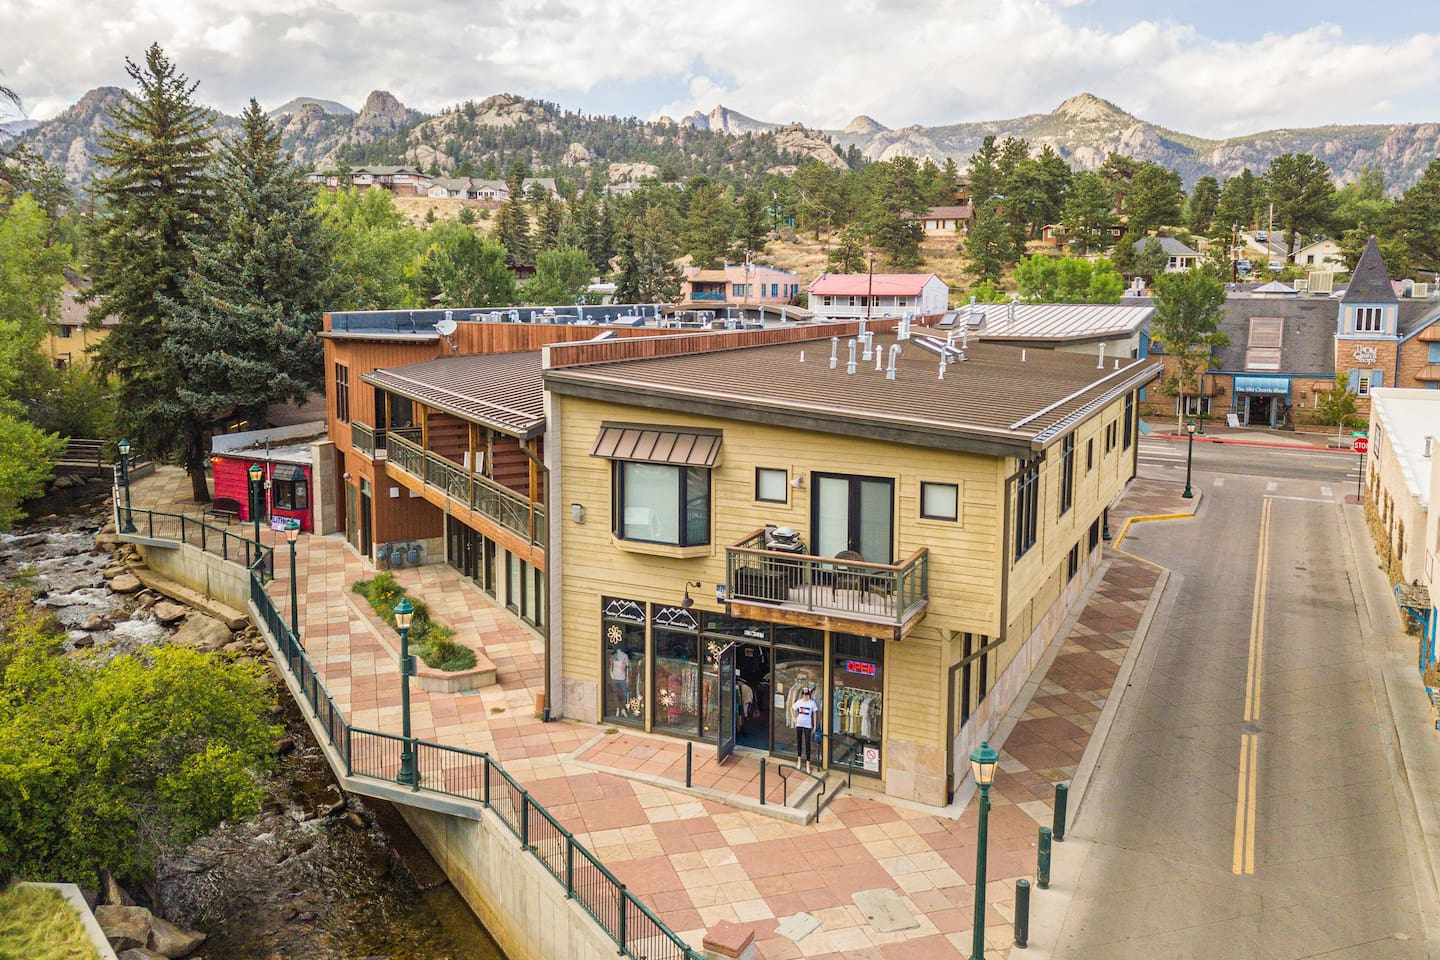 Spacious river front luxury loft! Steps from downtown restaurants and shopping! One of the nicest 1 Bedroom vacation homes in Estes!